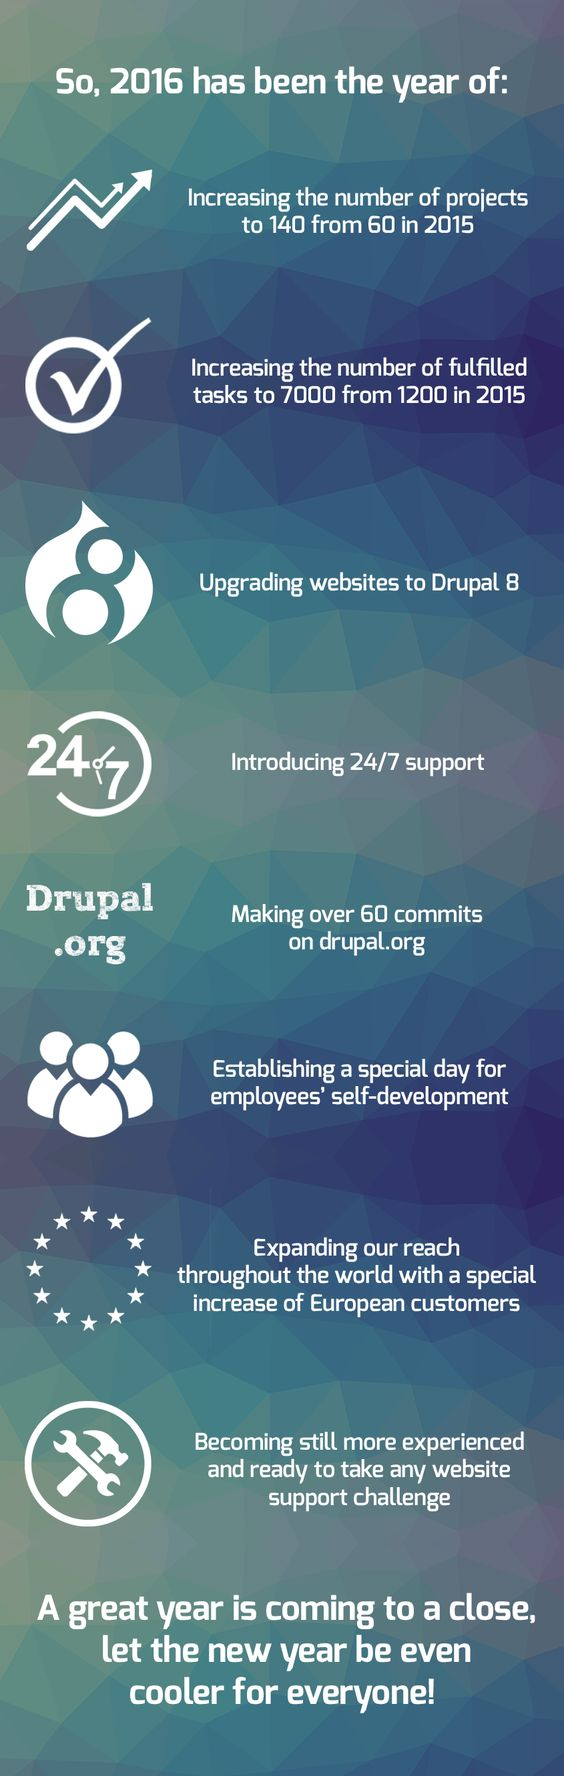 Support Drudesk sites sums up the year 2016 in the form of infographics. This includes various aspects of Drupal website support, achievements and just remarkable moments.